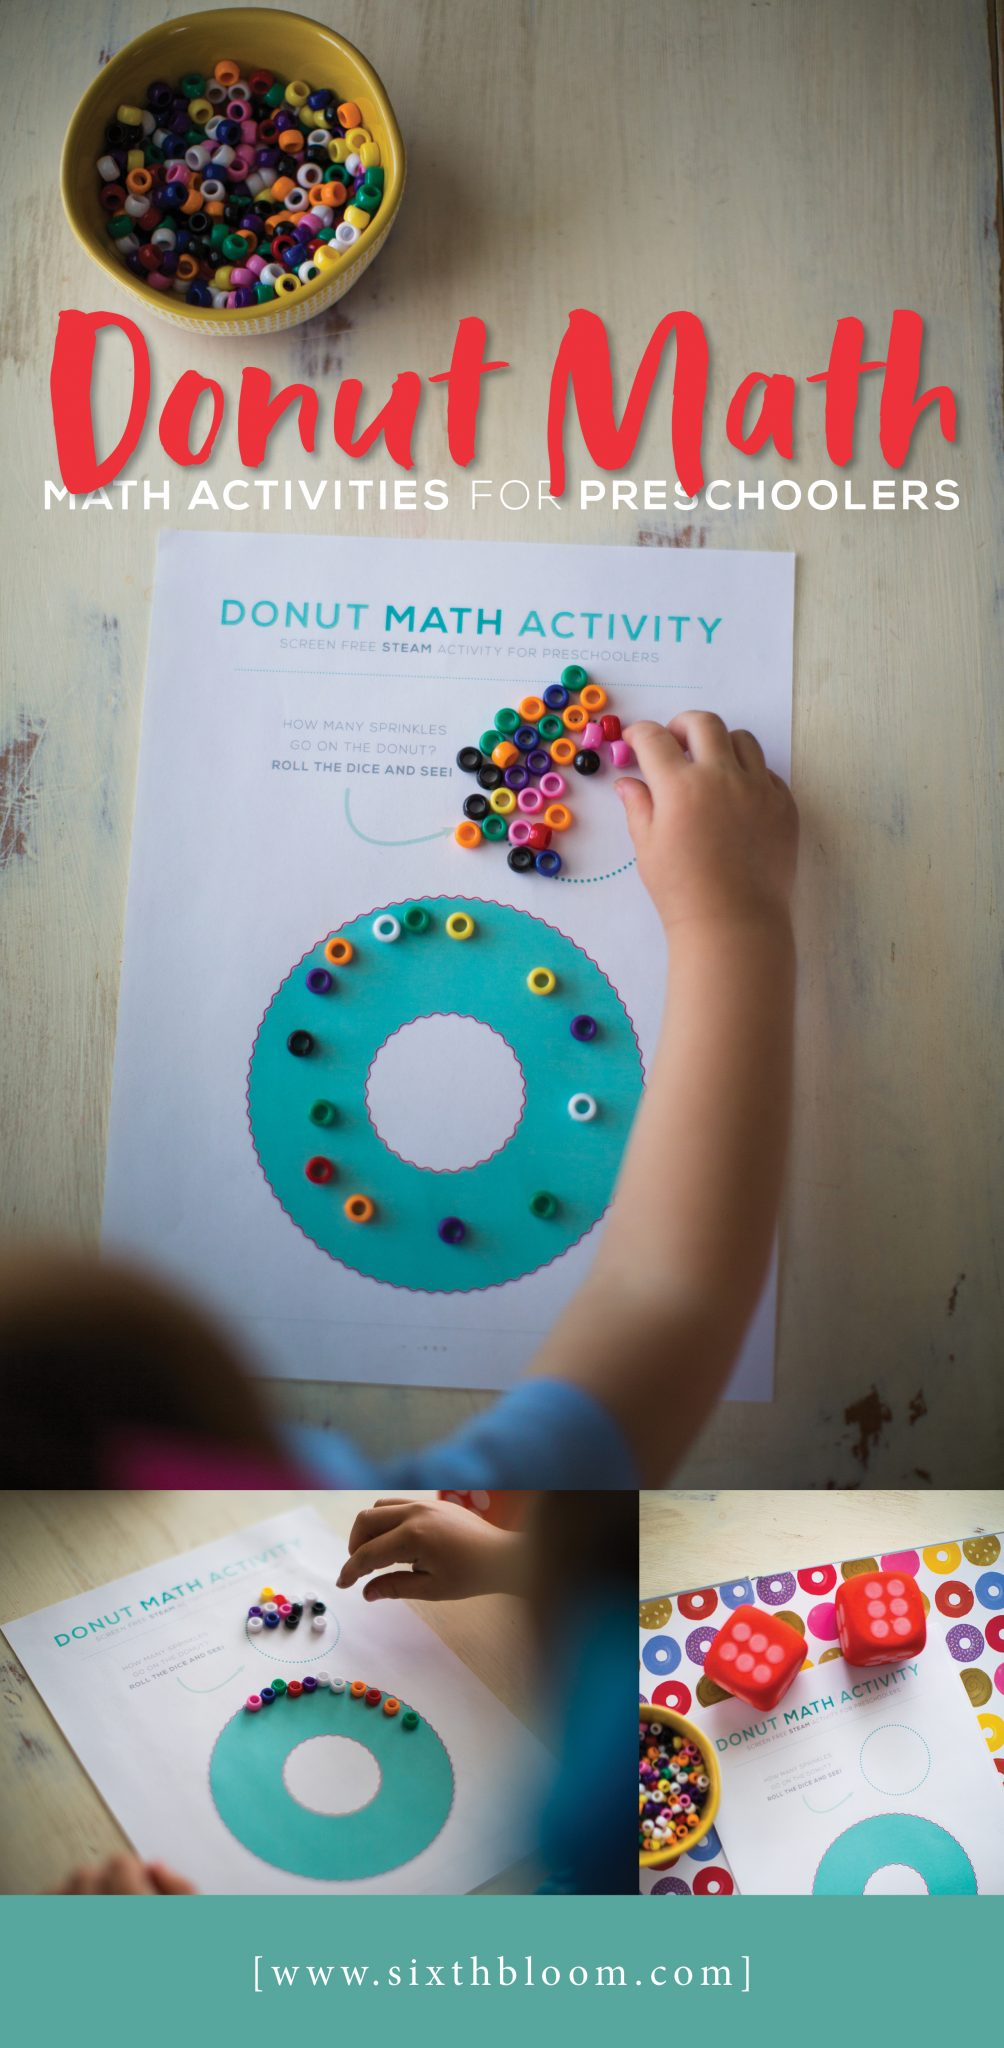 Donut Math - Math Activities for Preschoolers - Sixth Bloom